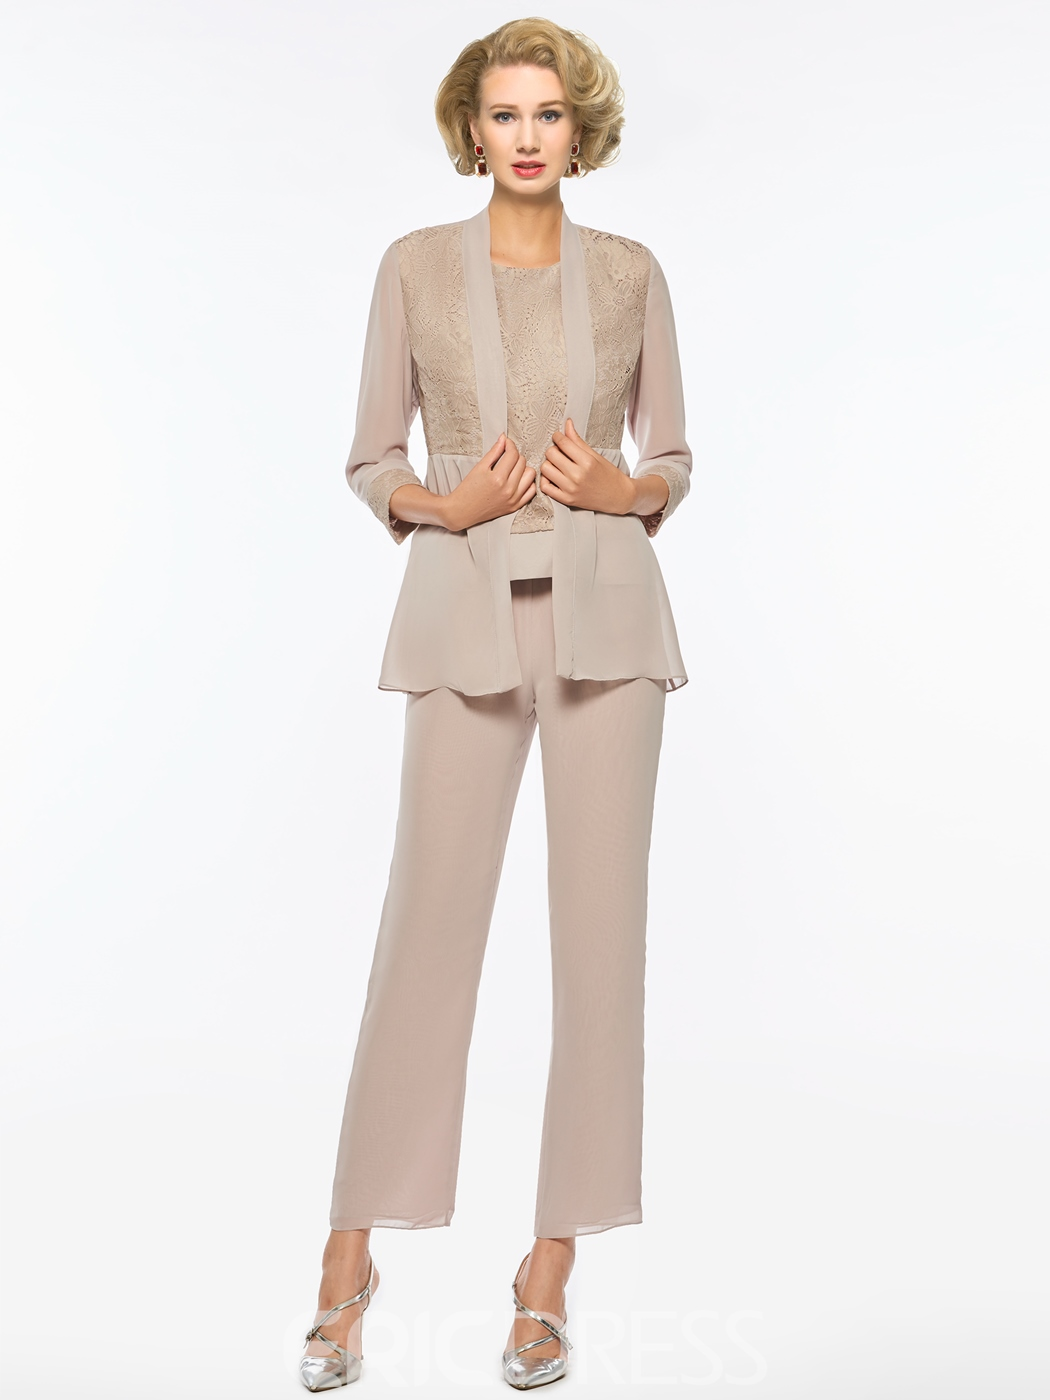 ccaef57c7444 Ericdress Chiffon Mother of The Bride Jumpsuit with Jacket 13020722 ...